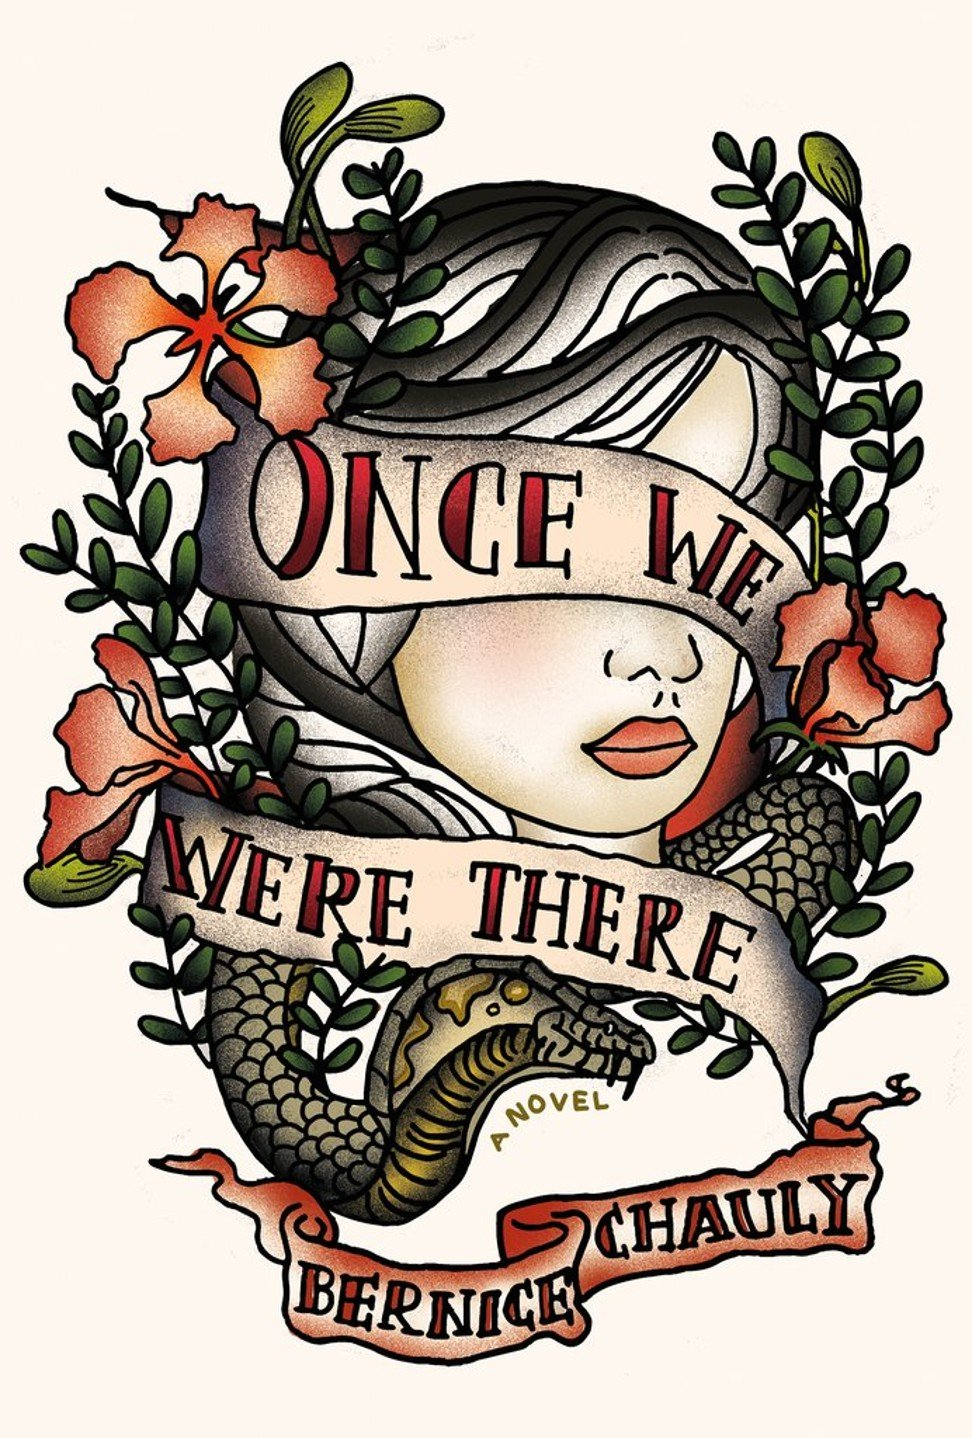 Once We Were There is Bernice Chauly's debut novel.